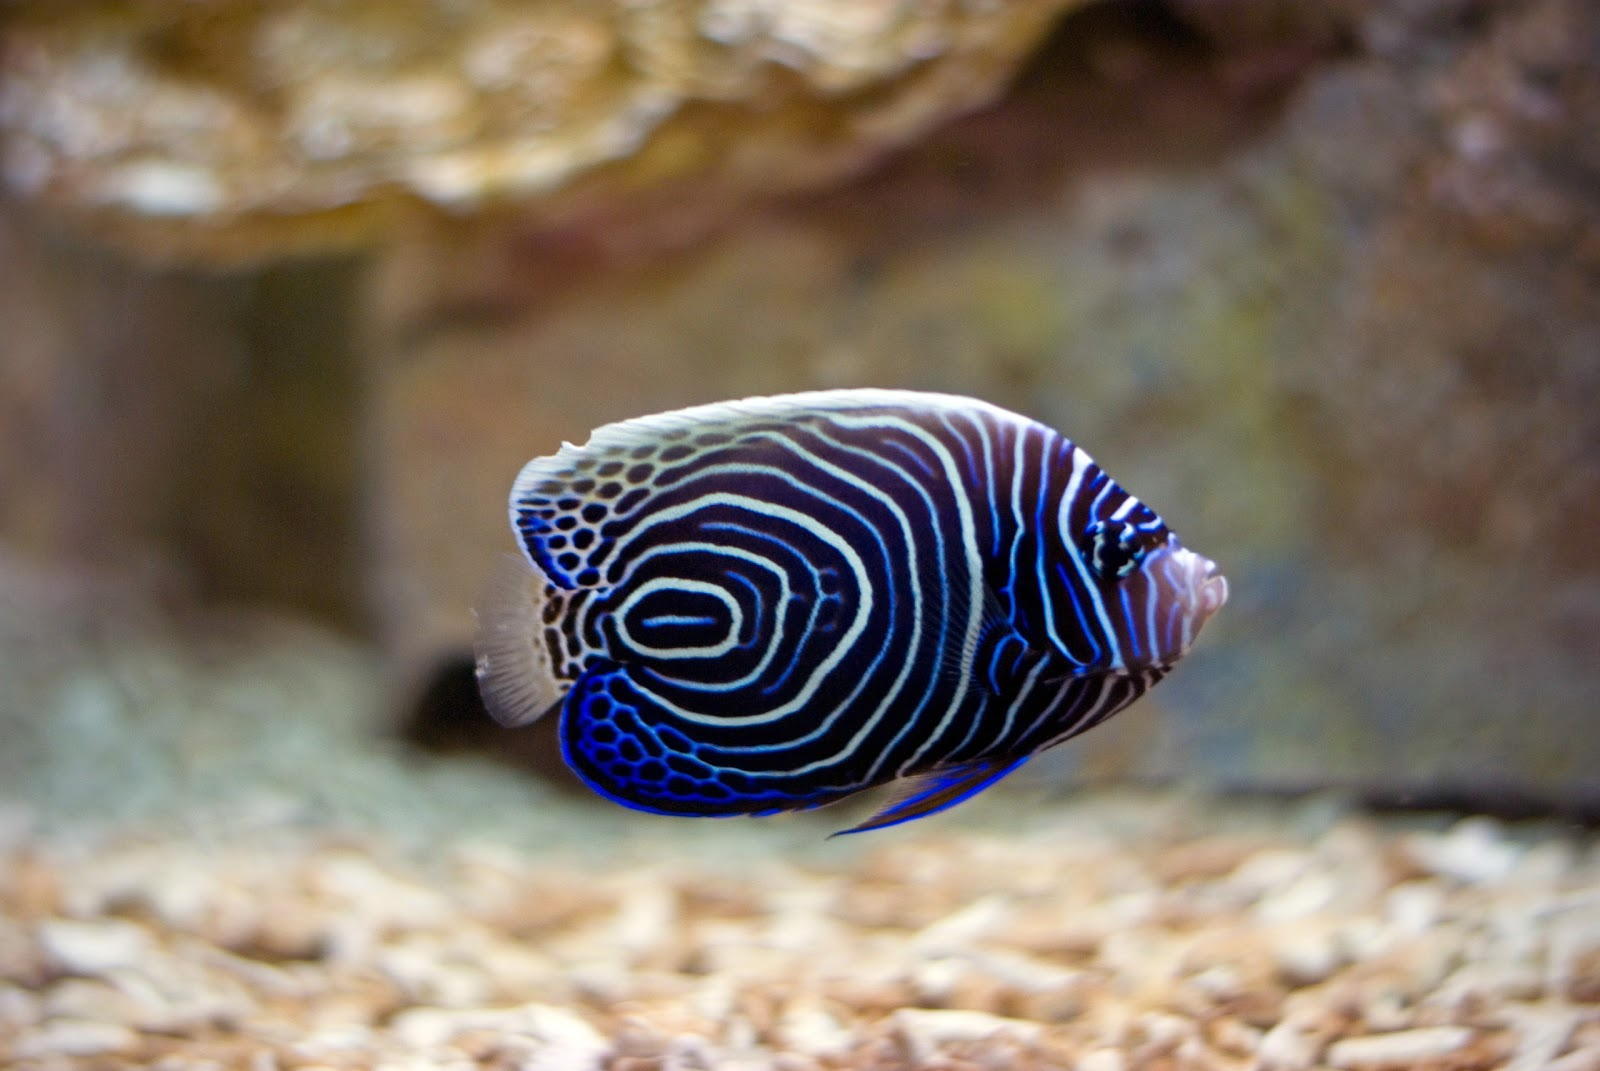 Free Wallpaper Download Tropical Fish Wallpaper Pictures